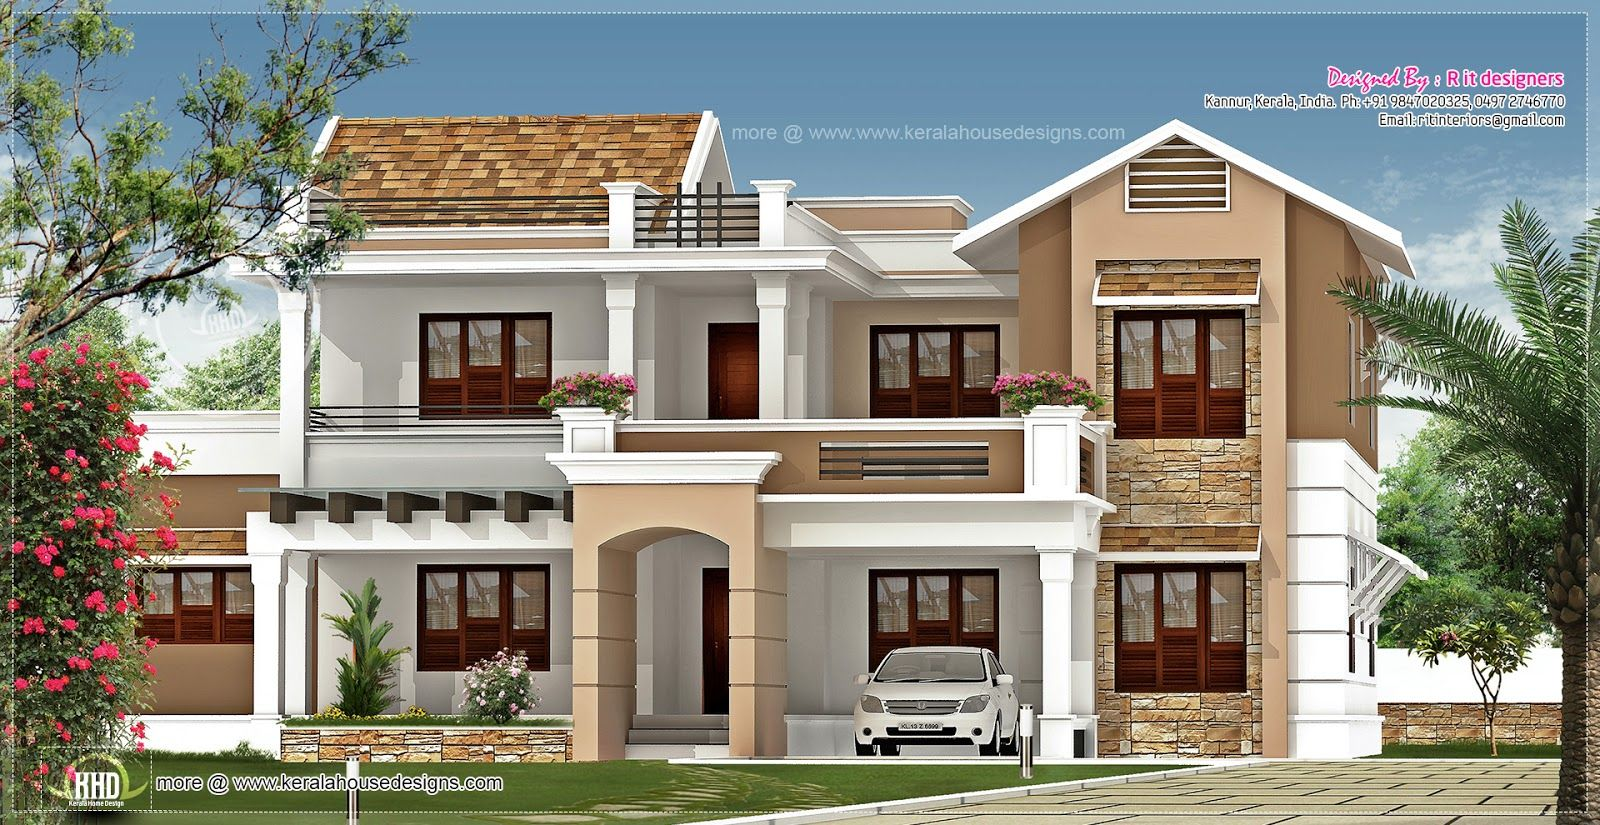 Awe Inspiring 800 Square Foot House Exterior Design 347 Square Yards Designed Largest Home Design Picture Inspirations Pitcheantrous